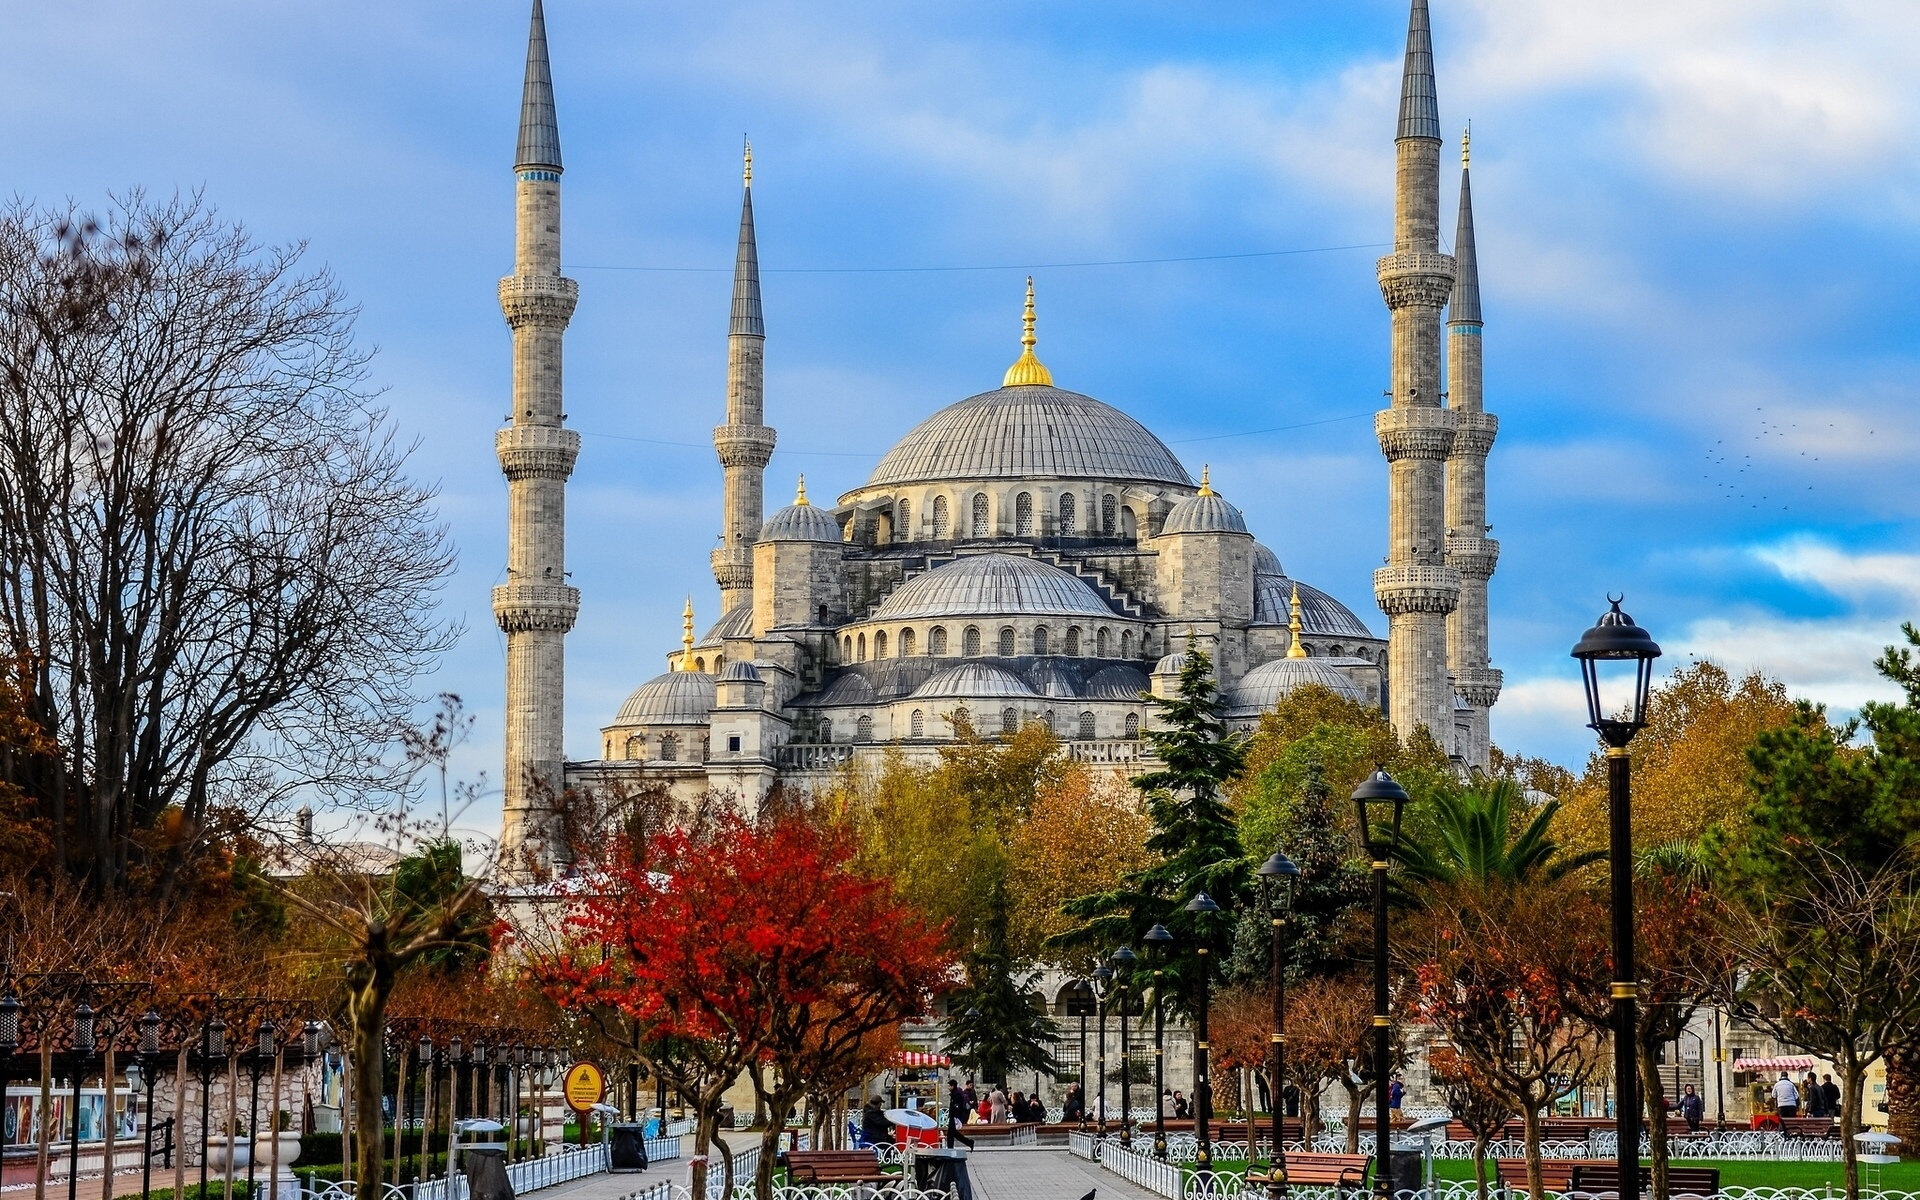 Umroh plus city tour Istanbul Nov, Des 2017